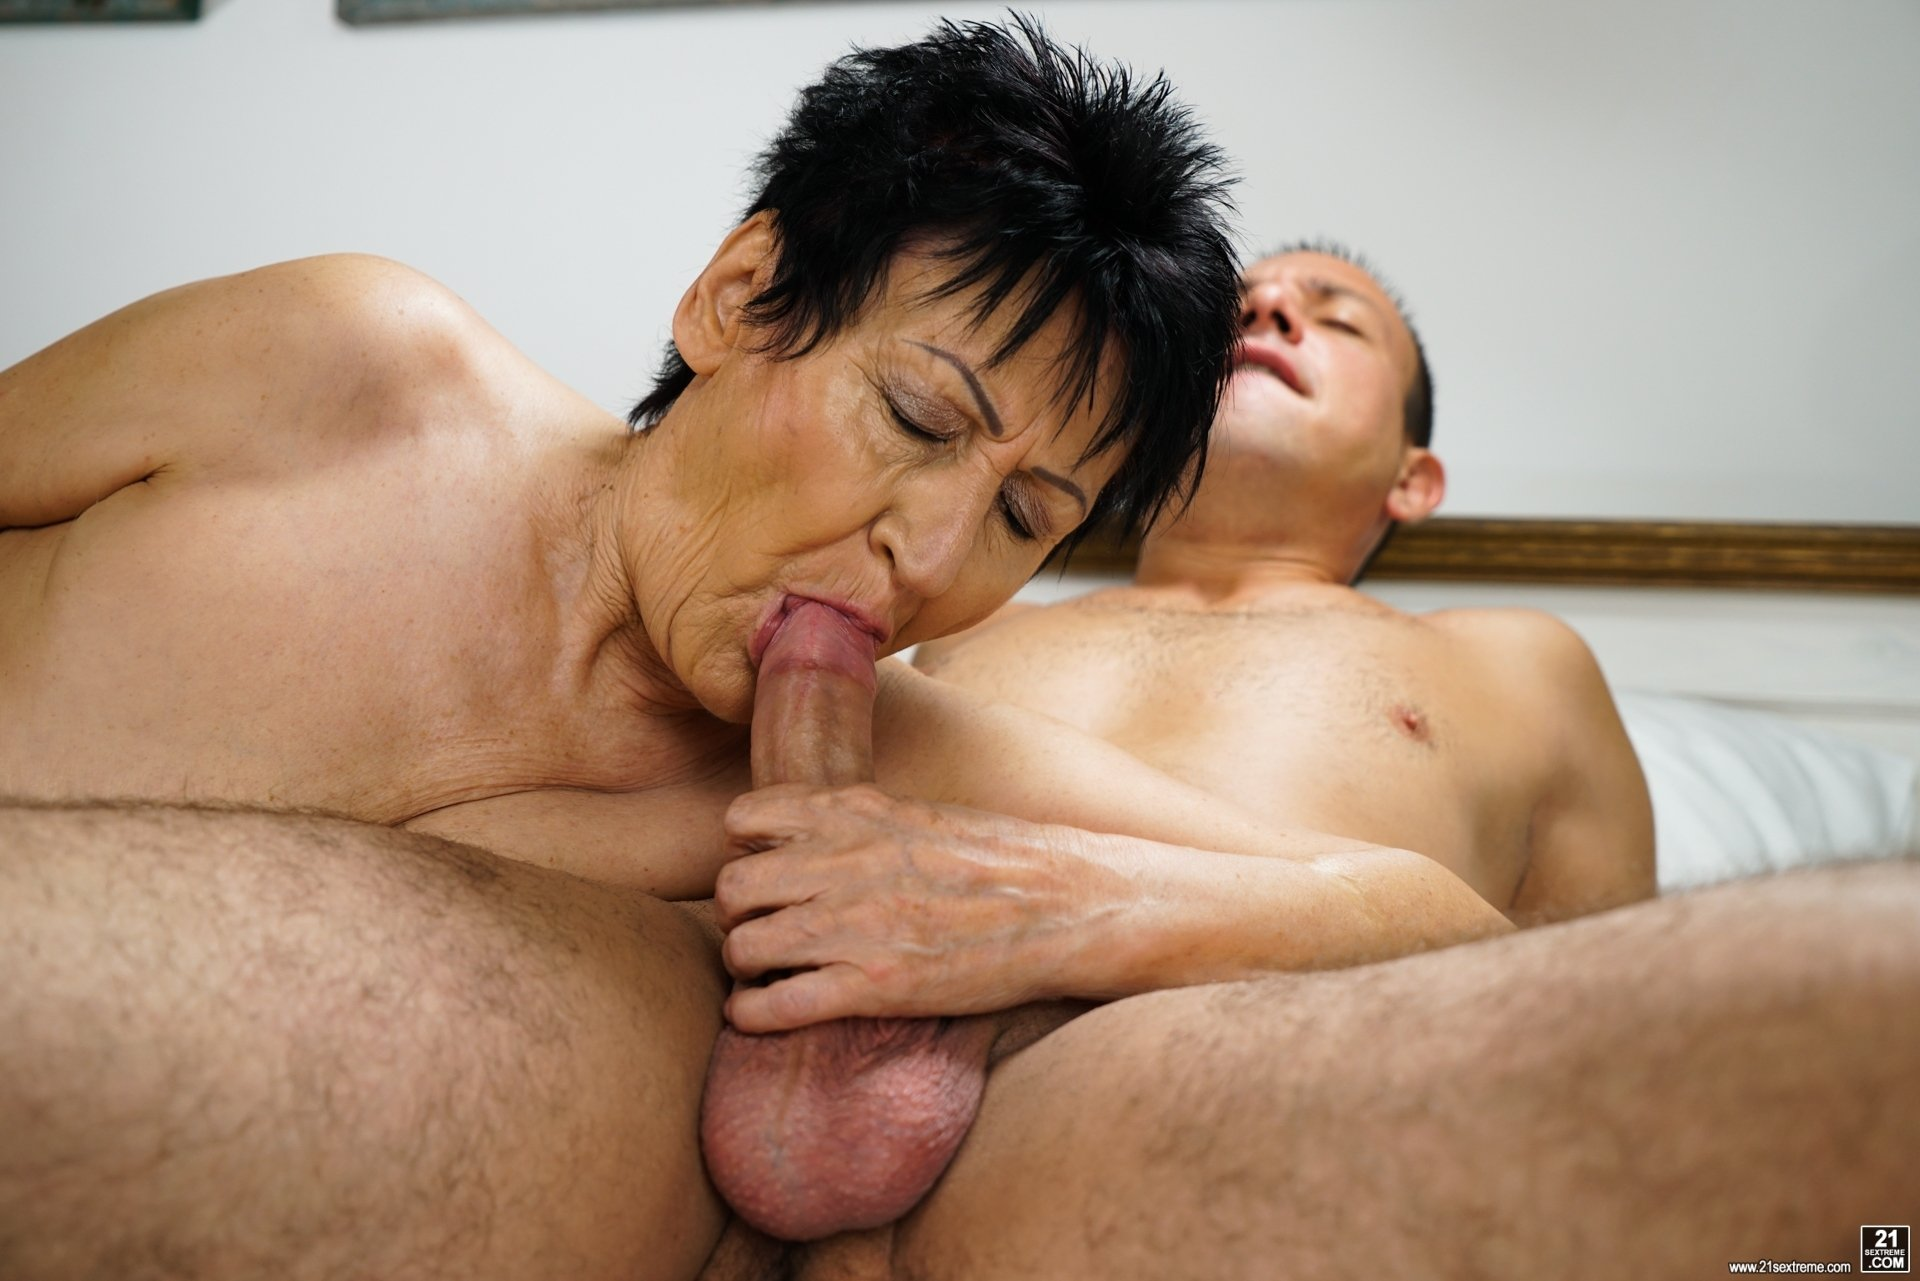 asian lesbian massage hd